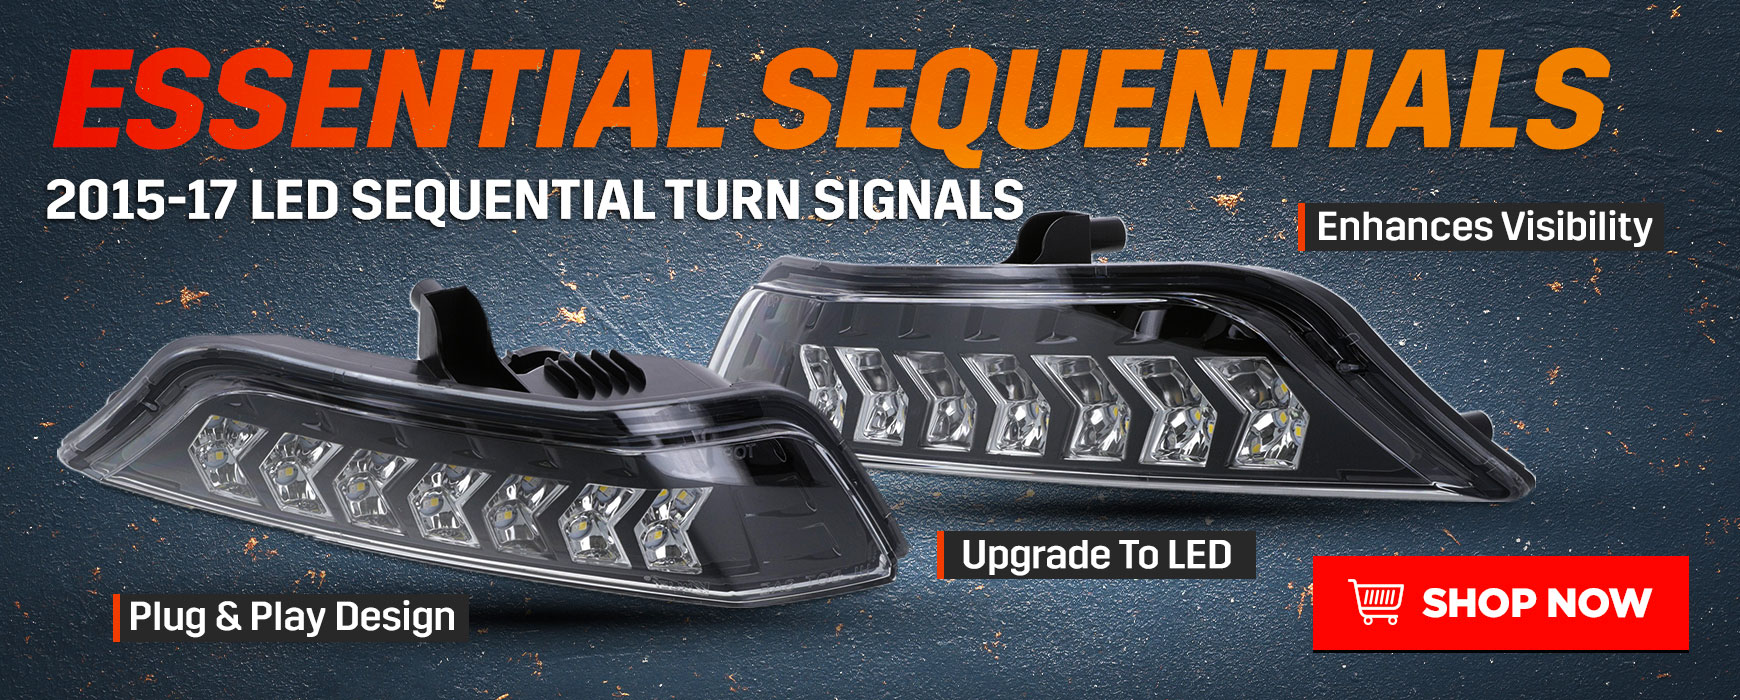 Ford Mustang LED Sequential Turn Signals